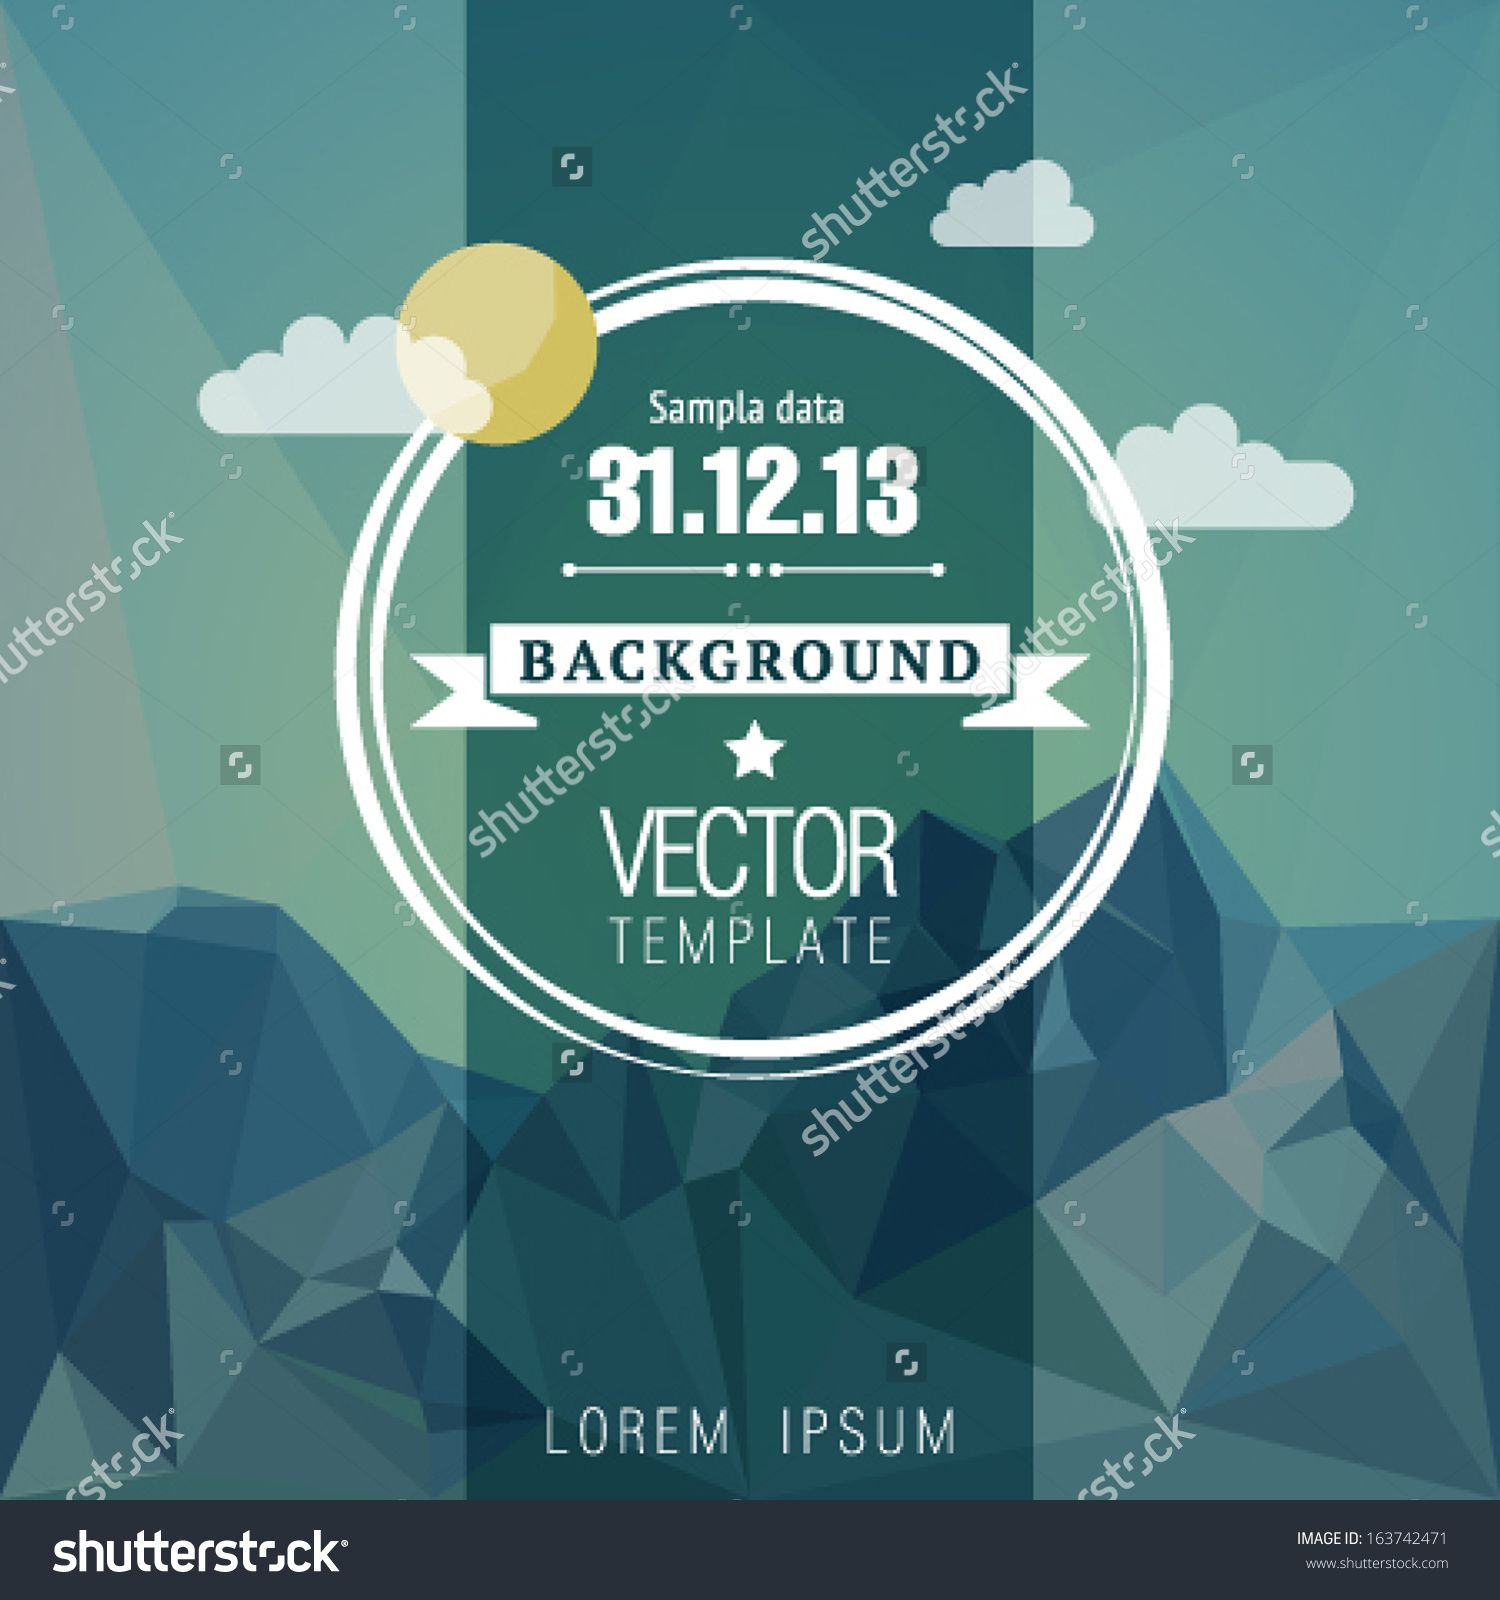 Poster design editor - Retro Design Poster Or Flyer Vector Template Illustration Stock Vector From The Largest Library Of Royalty Free Images Only At Shutterstock